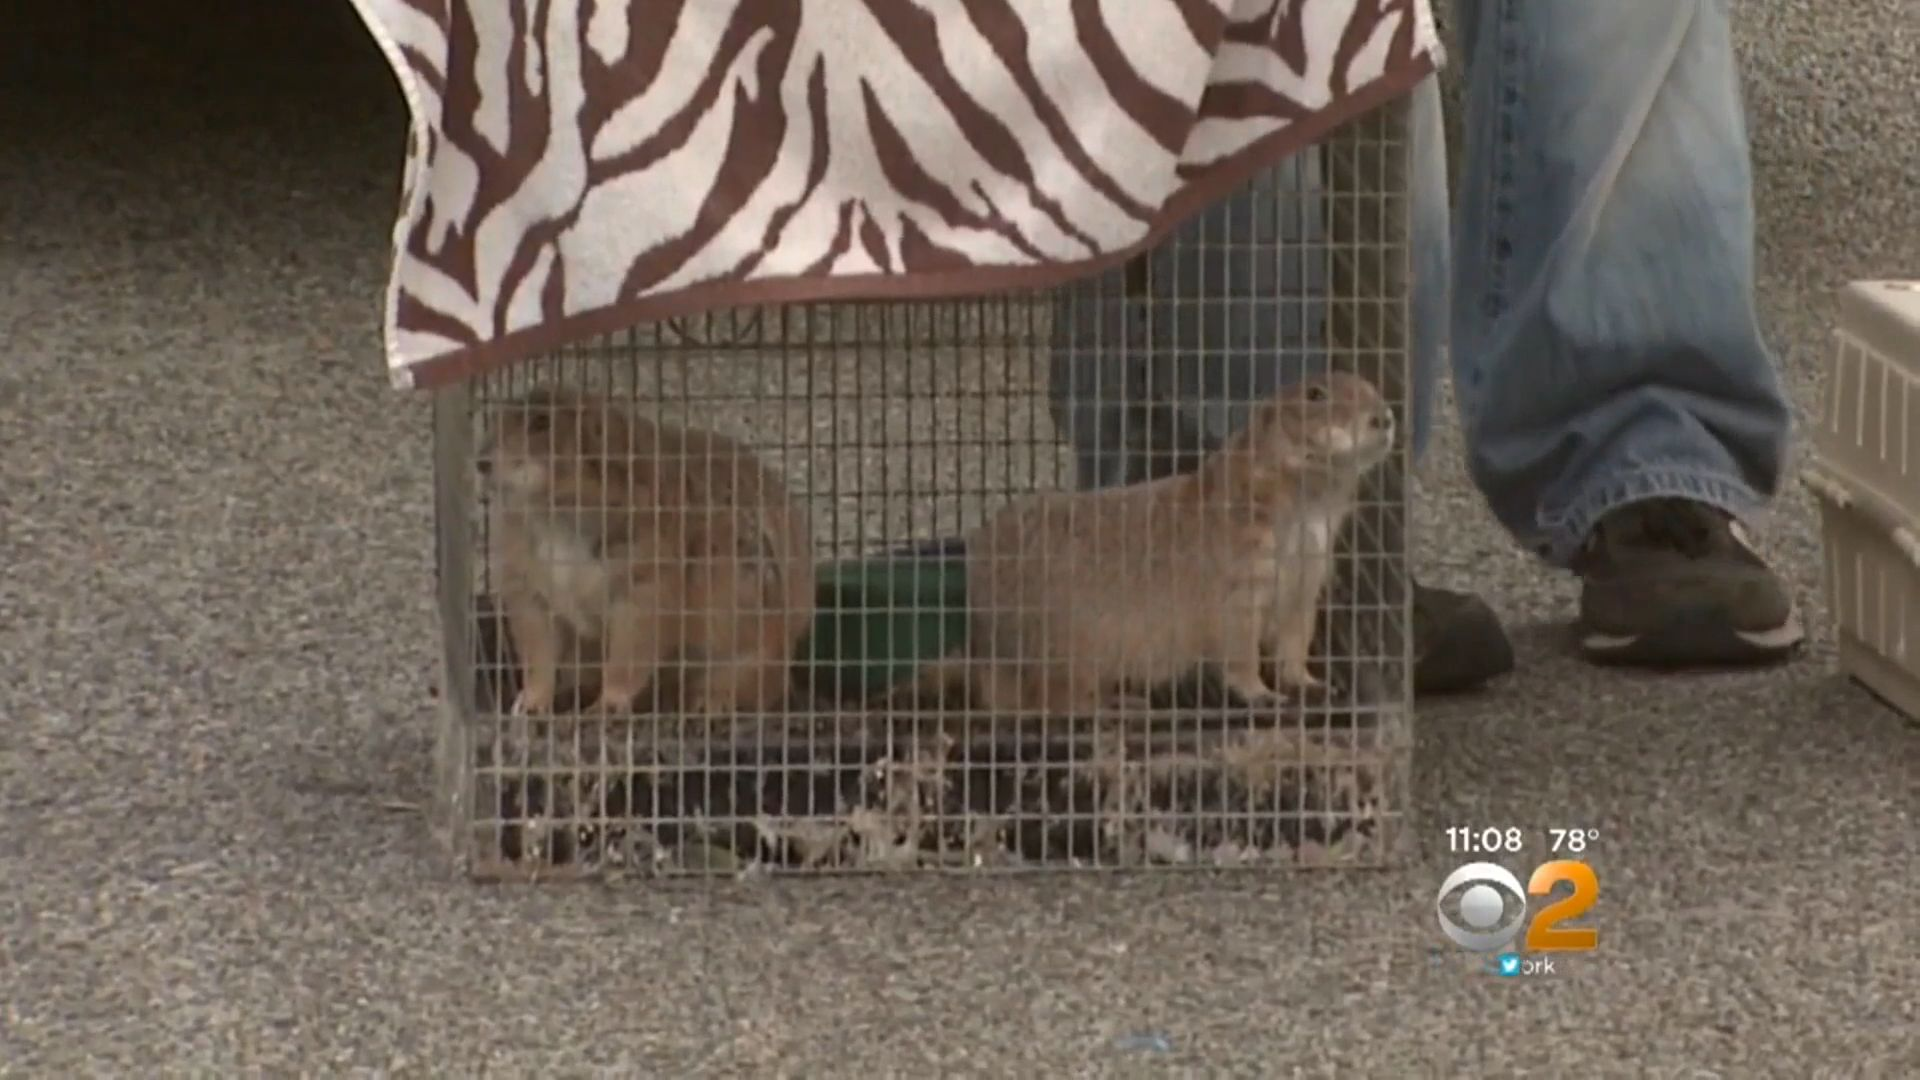 These two prairie dogs were among the animals recovered from the Long Island home on Tuesday.